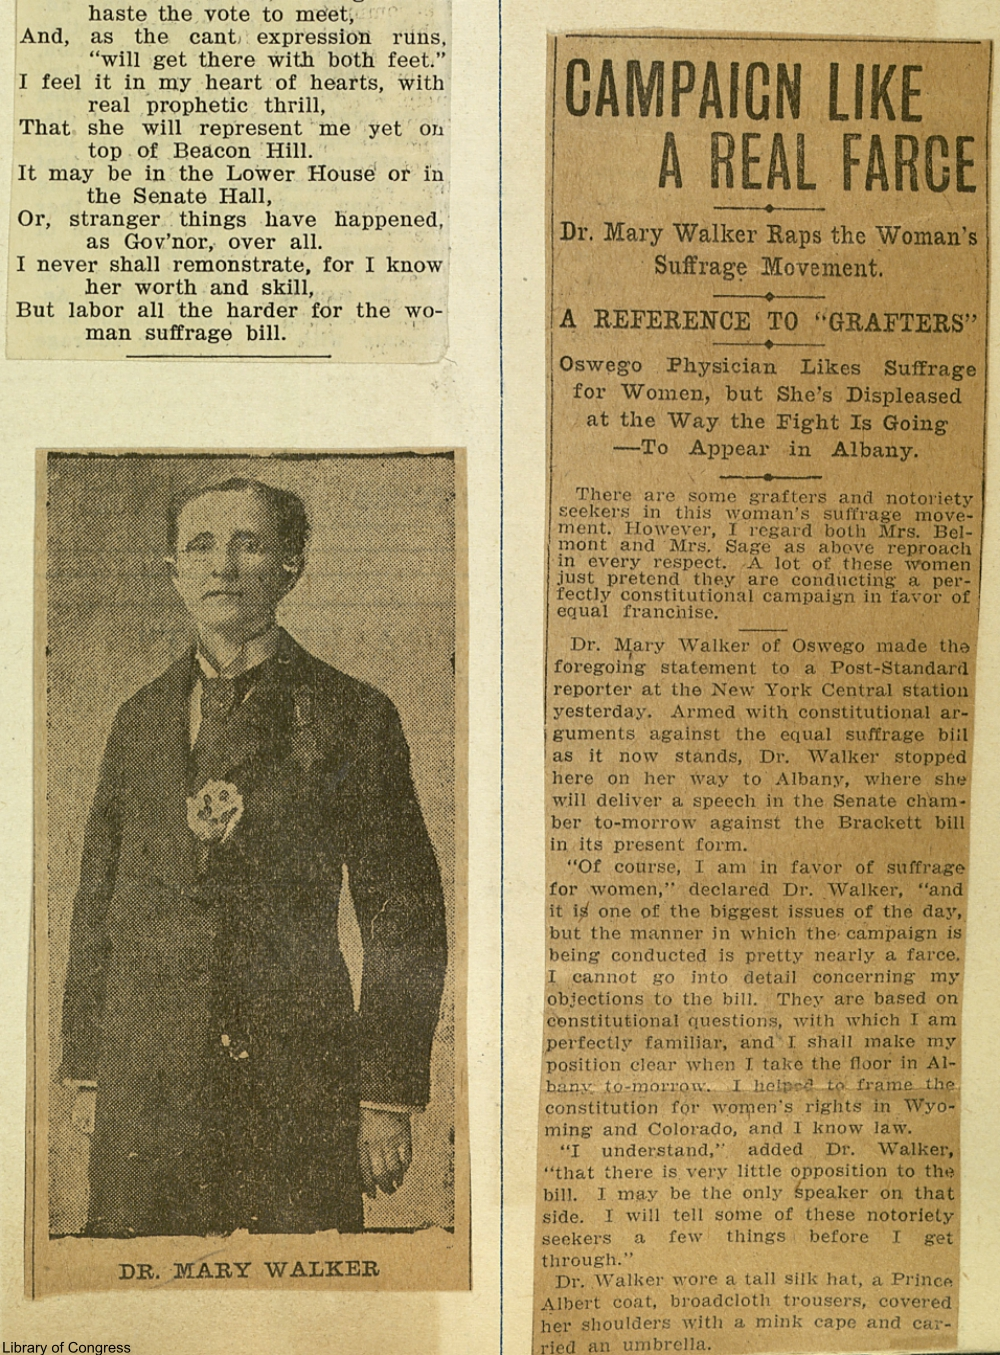 Dr. Mary Walker gives her opinions on the suffrage campaign of the day